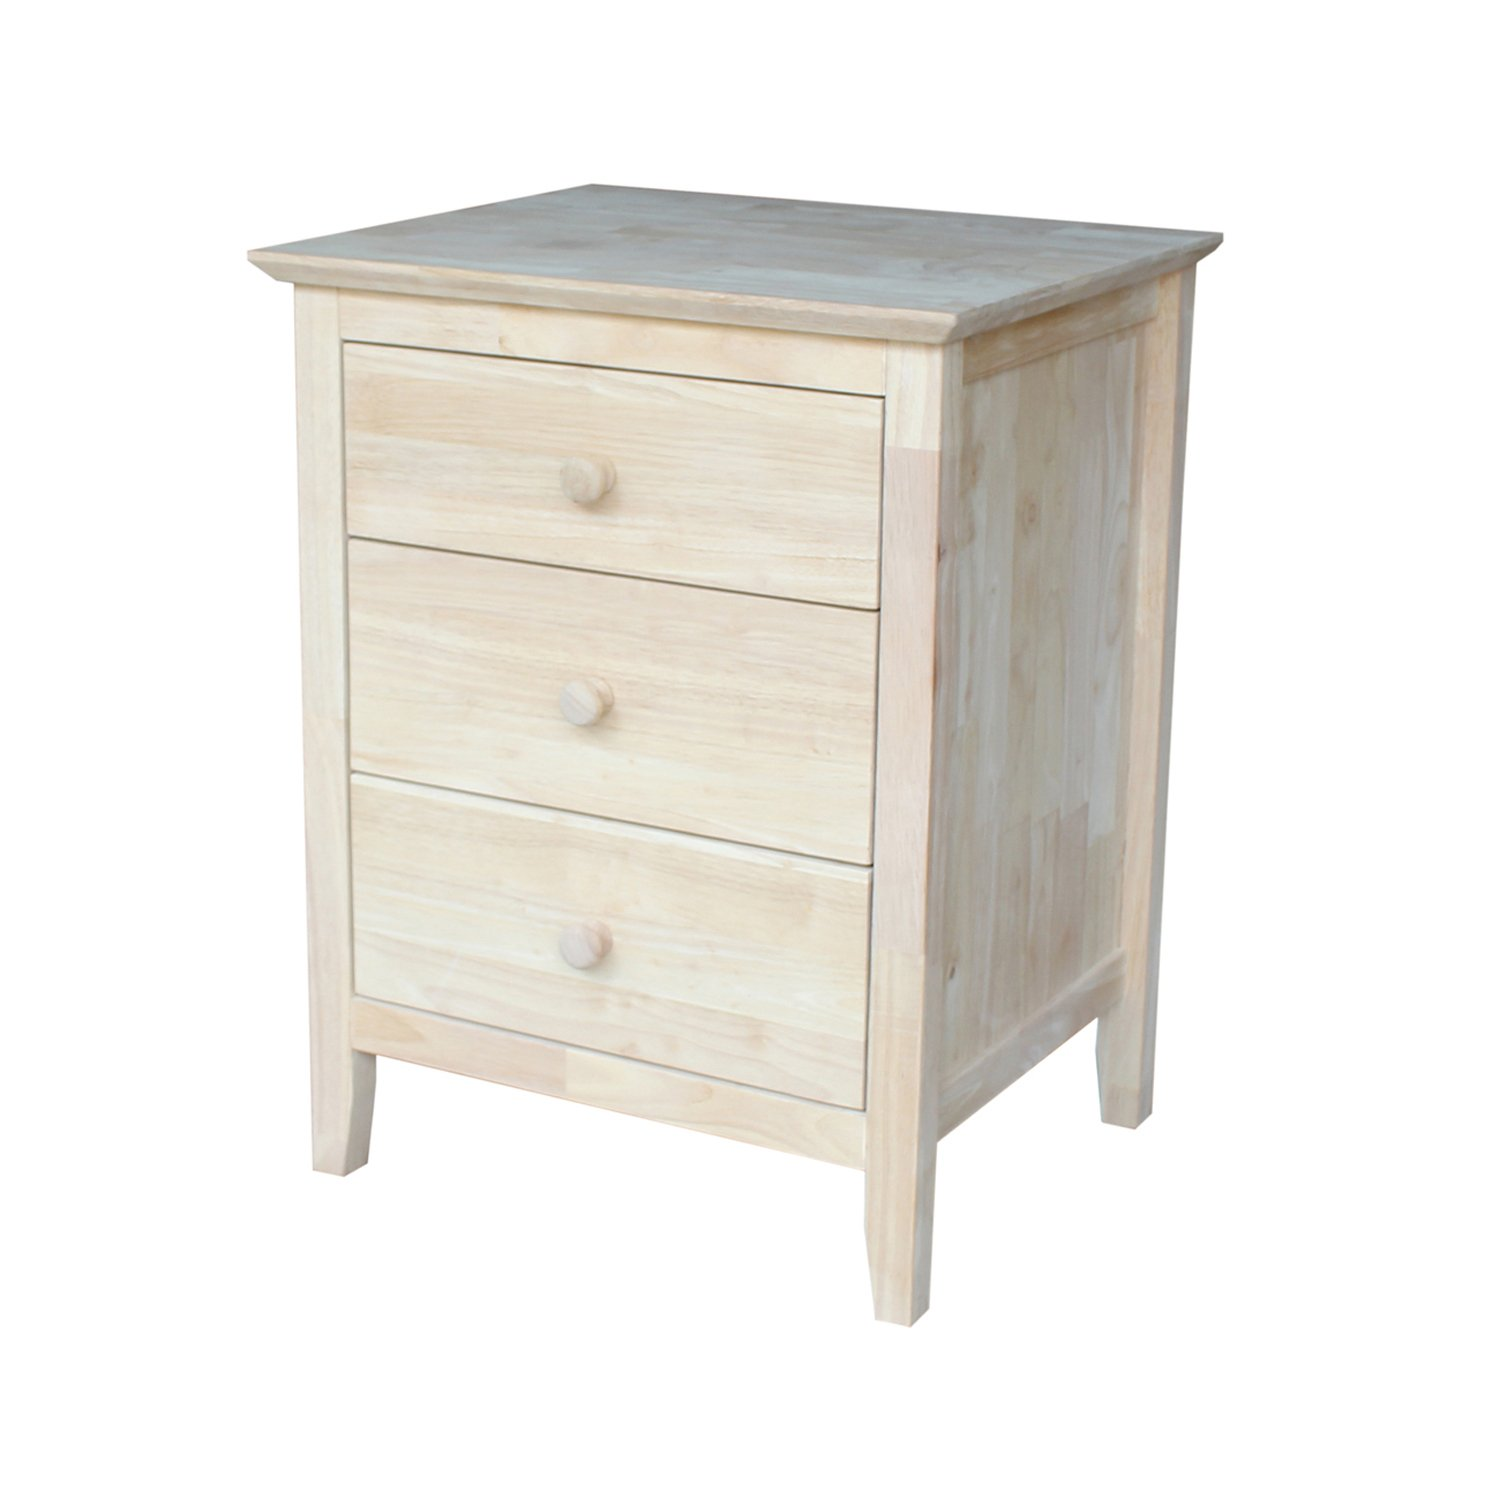 International Concepts Nightstand with 3 Drawers, Standard by International Concepts